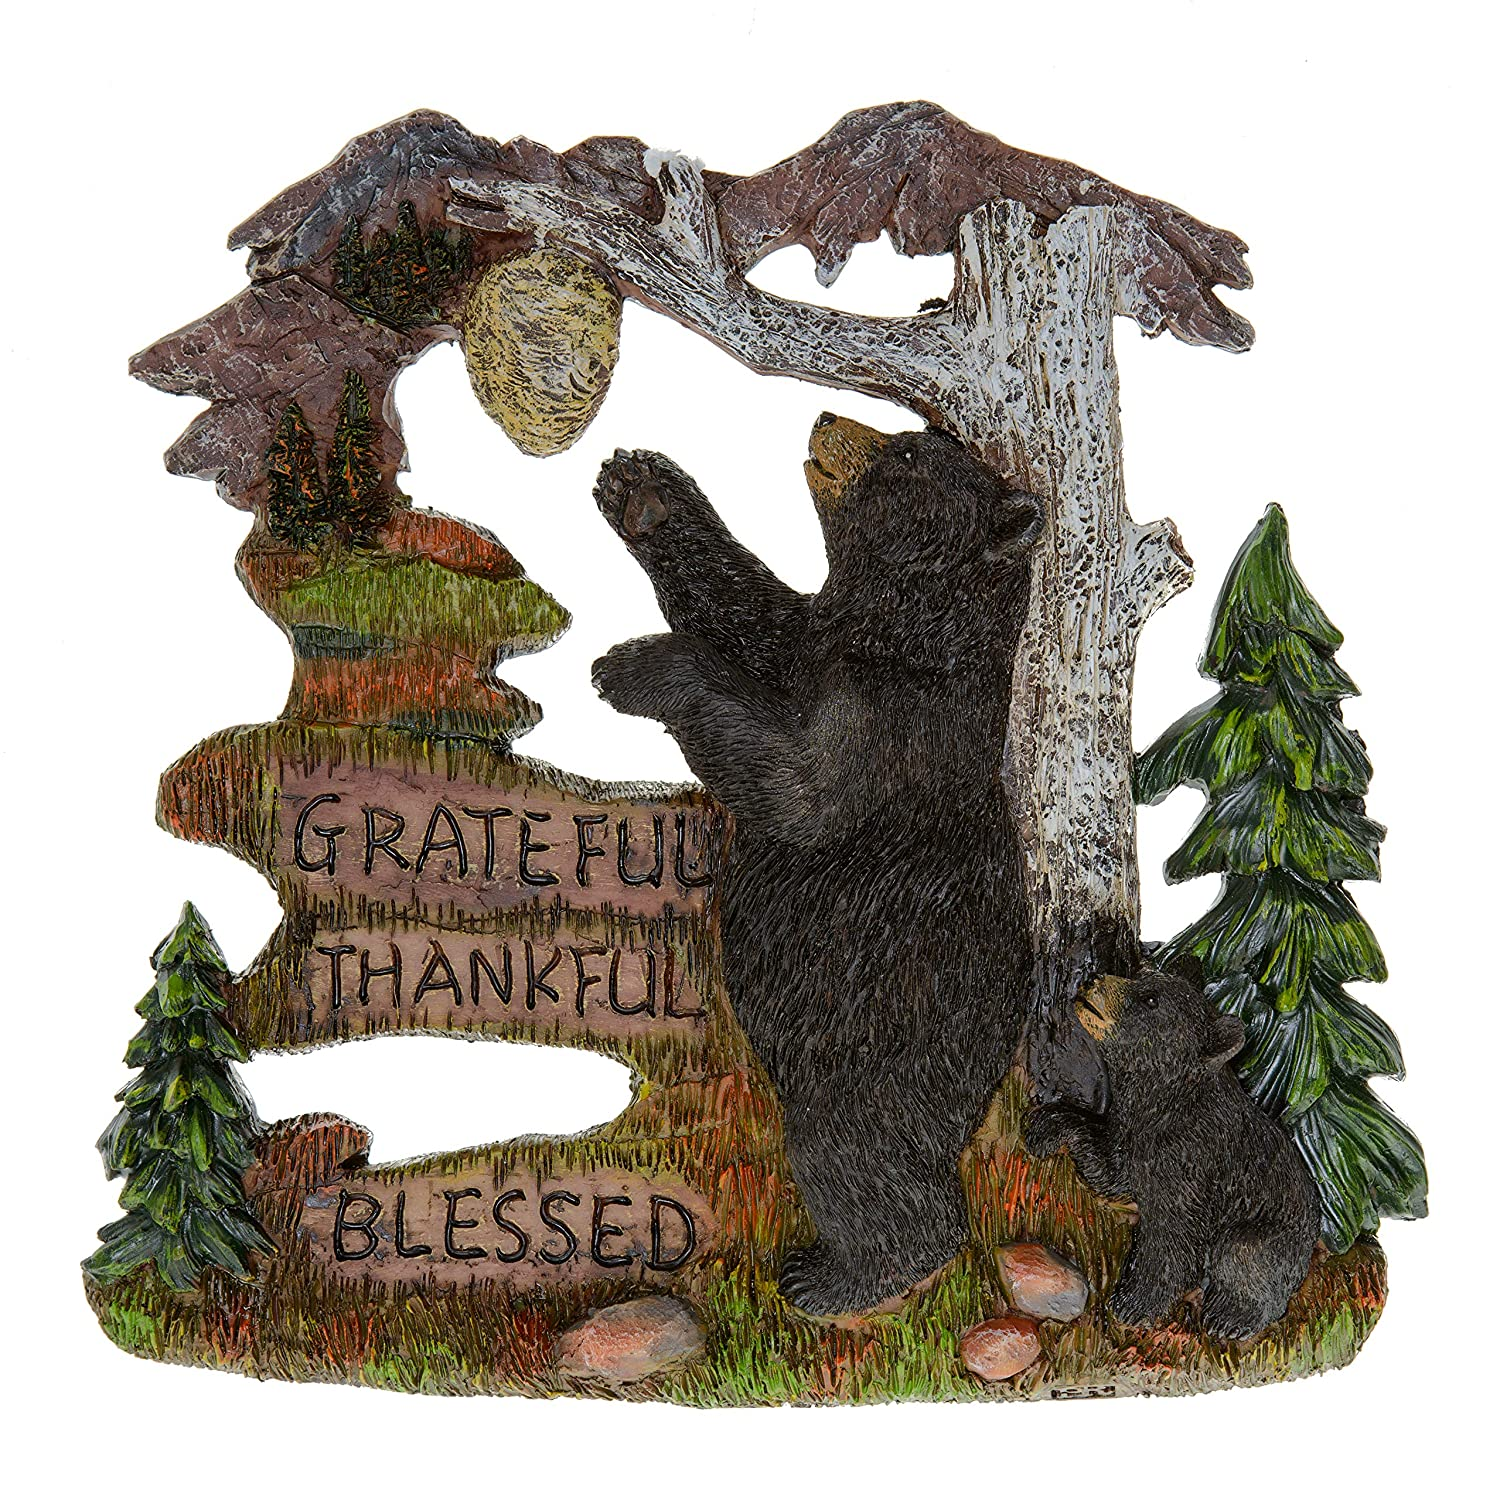 Black Bear Decorations for Home - Wall Signs for Home Decor Family - Decorative Wall Plaques Wildlife Gift Ideas - Bear Wall Hanging Lodge Decorations for Home - Grateful Thankful Blessed 7.87""